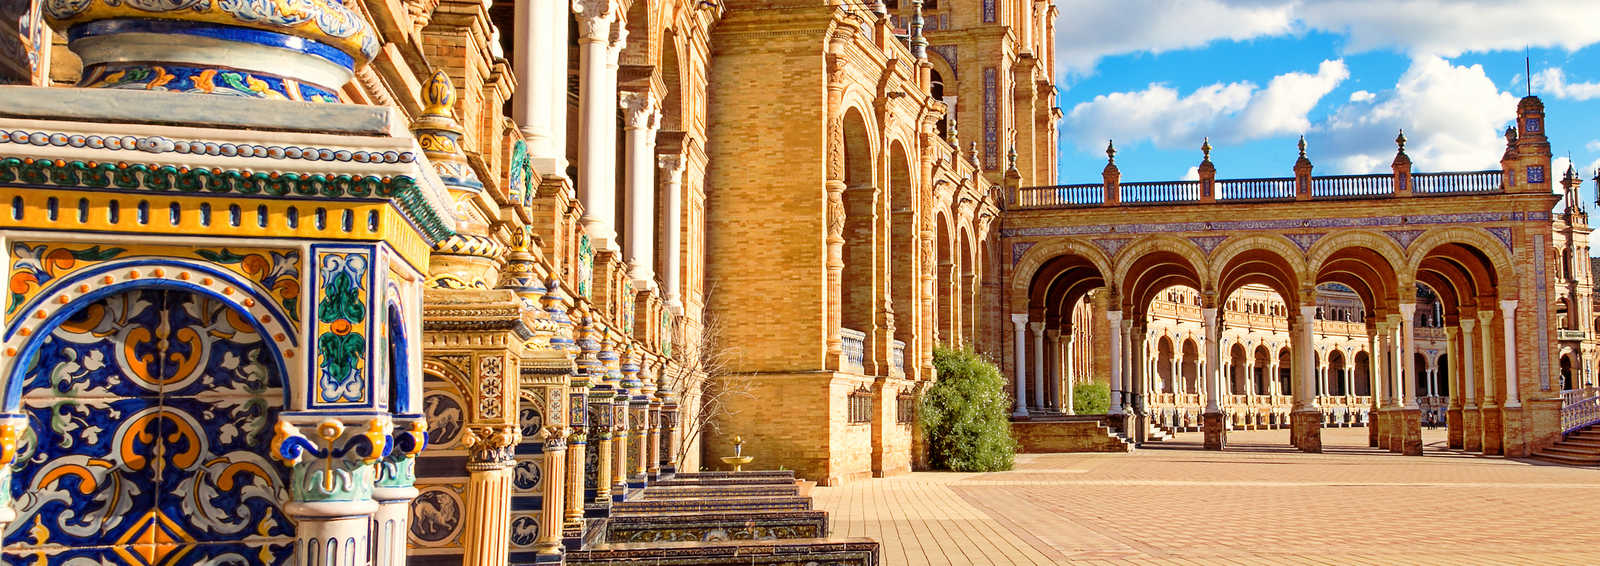 Plaza Espa close to the centre of Seville, Southern Spain